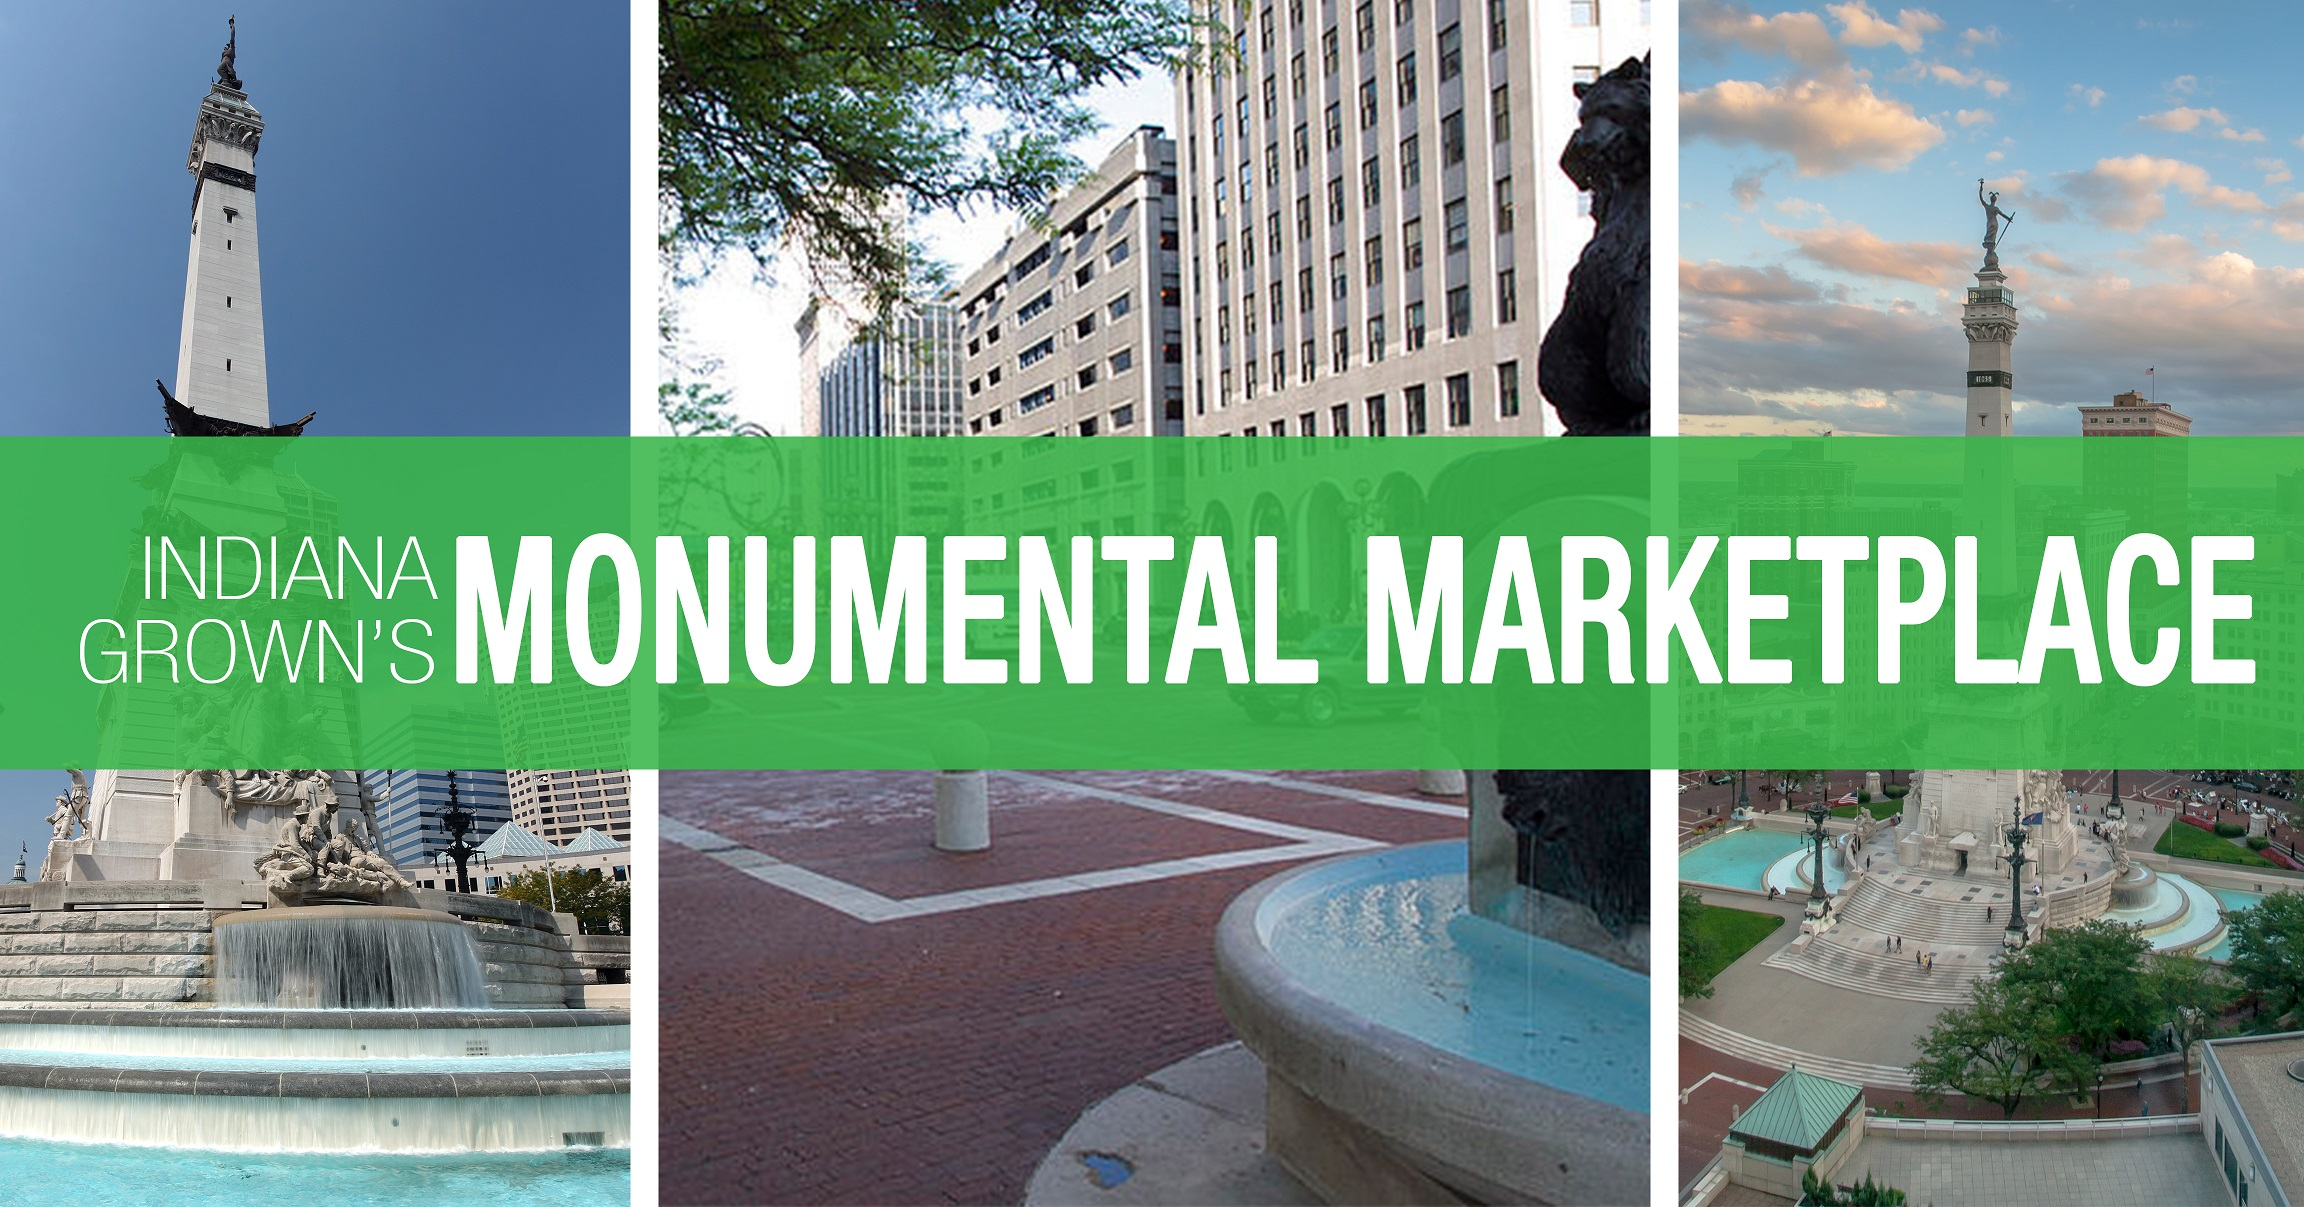 Support local by attending Indiana Grown's Monumental Marketplace